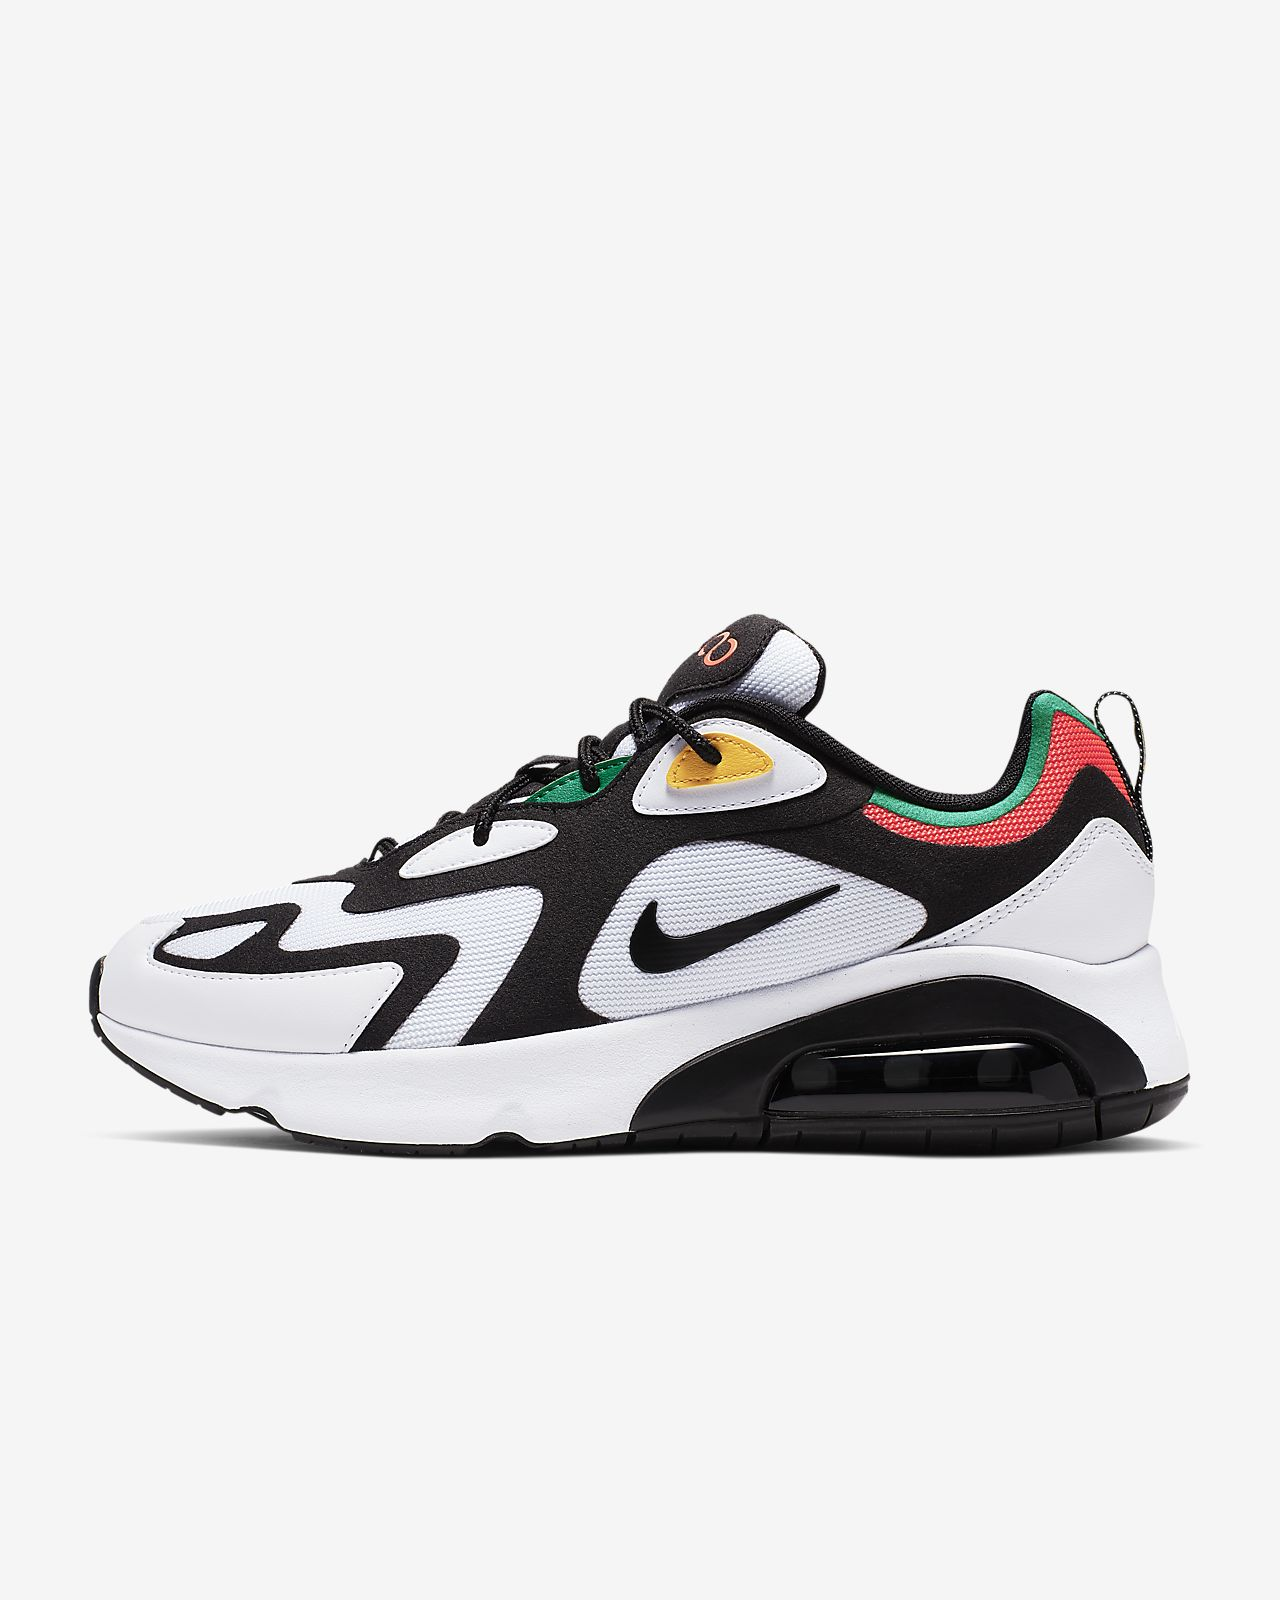 Nike Air Max 200 (2000 World Stage) Herrenschuh